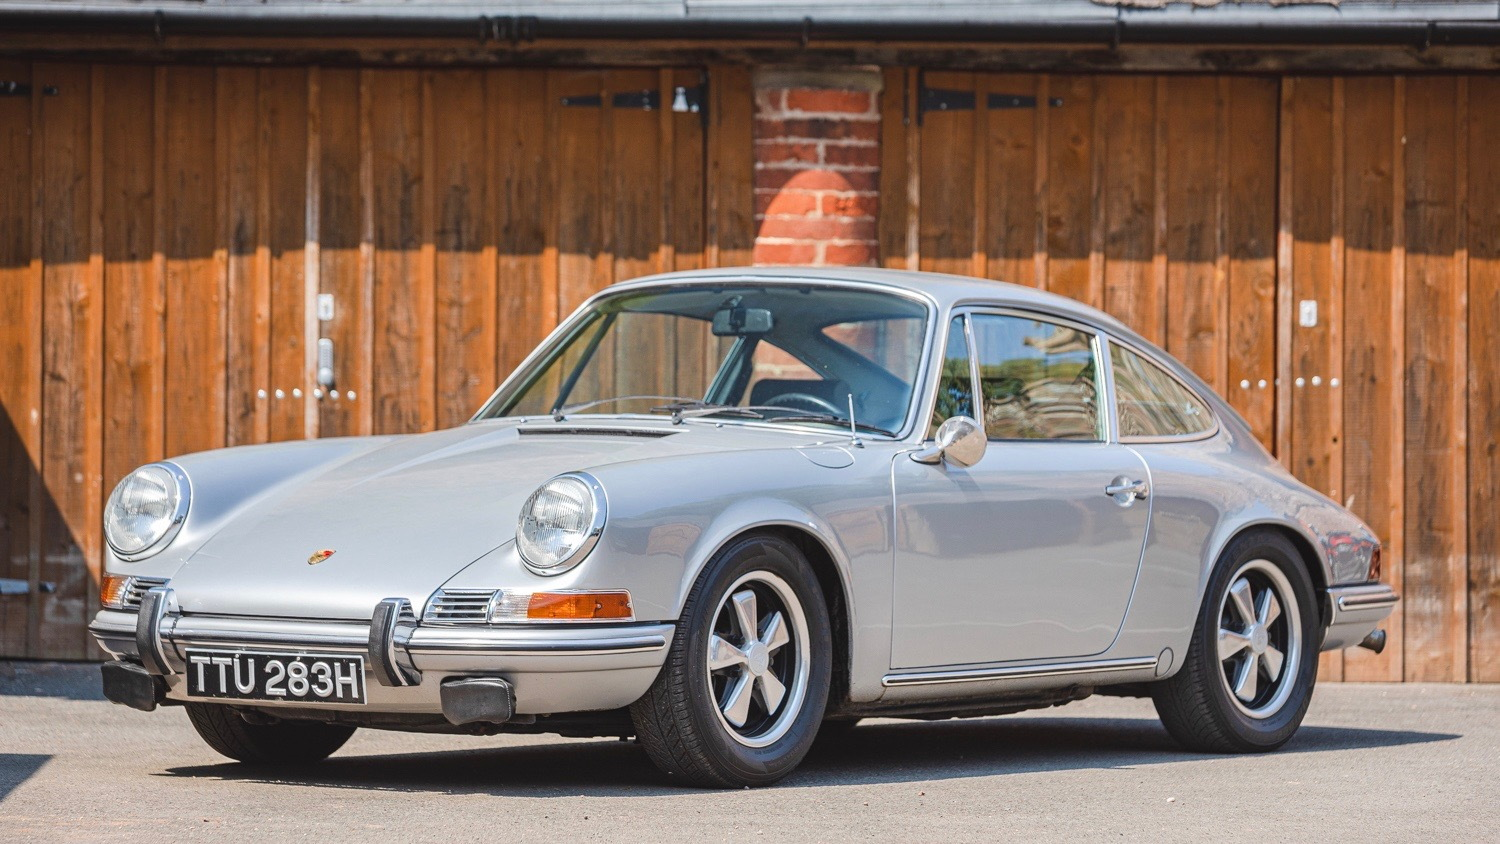 1969 Porsche 911T owned by Richard Hammond (photo via Silverstone Auctions)